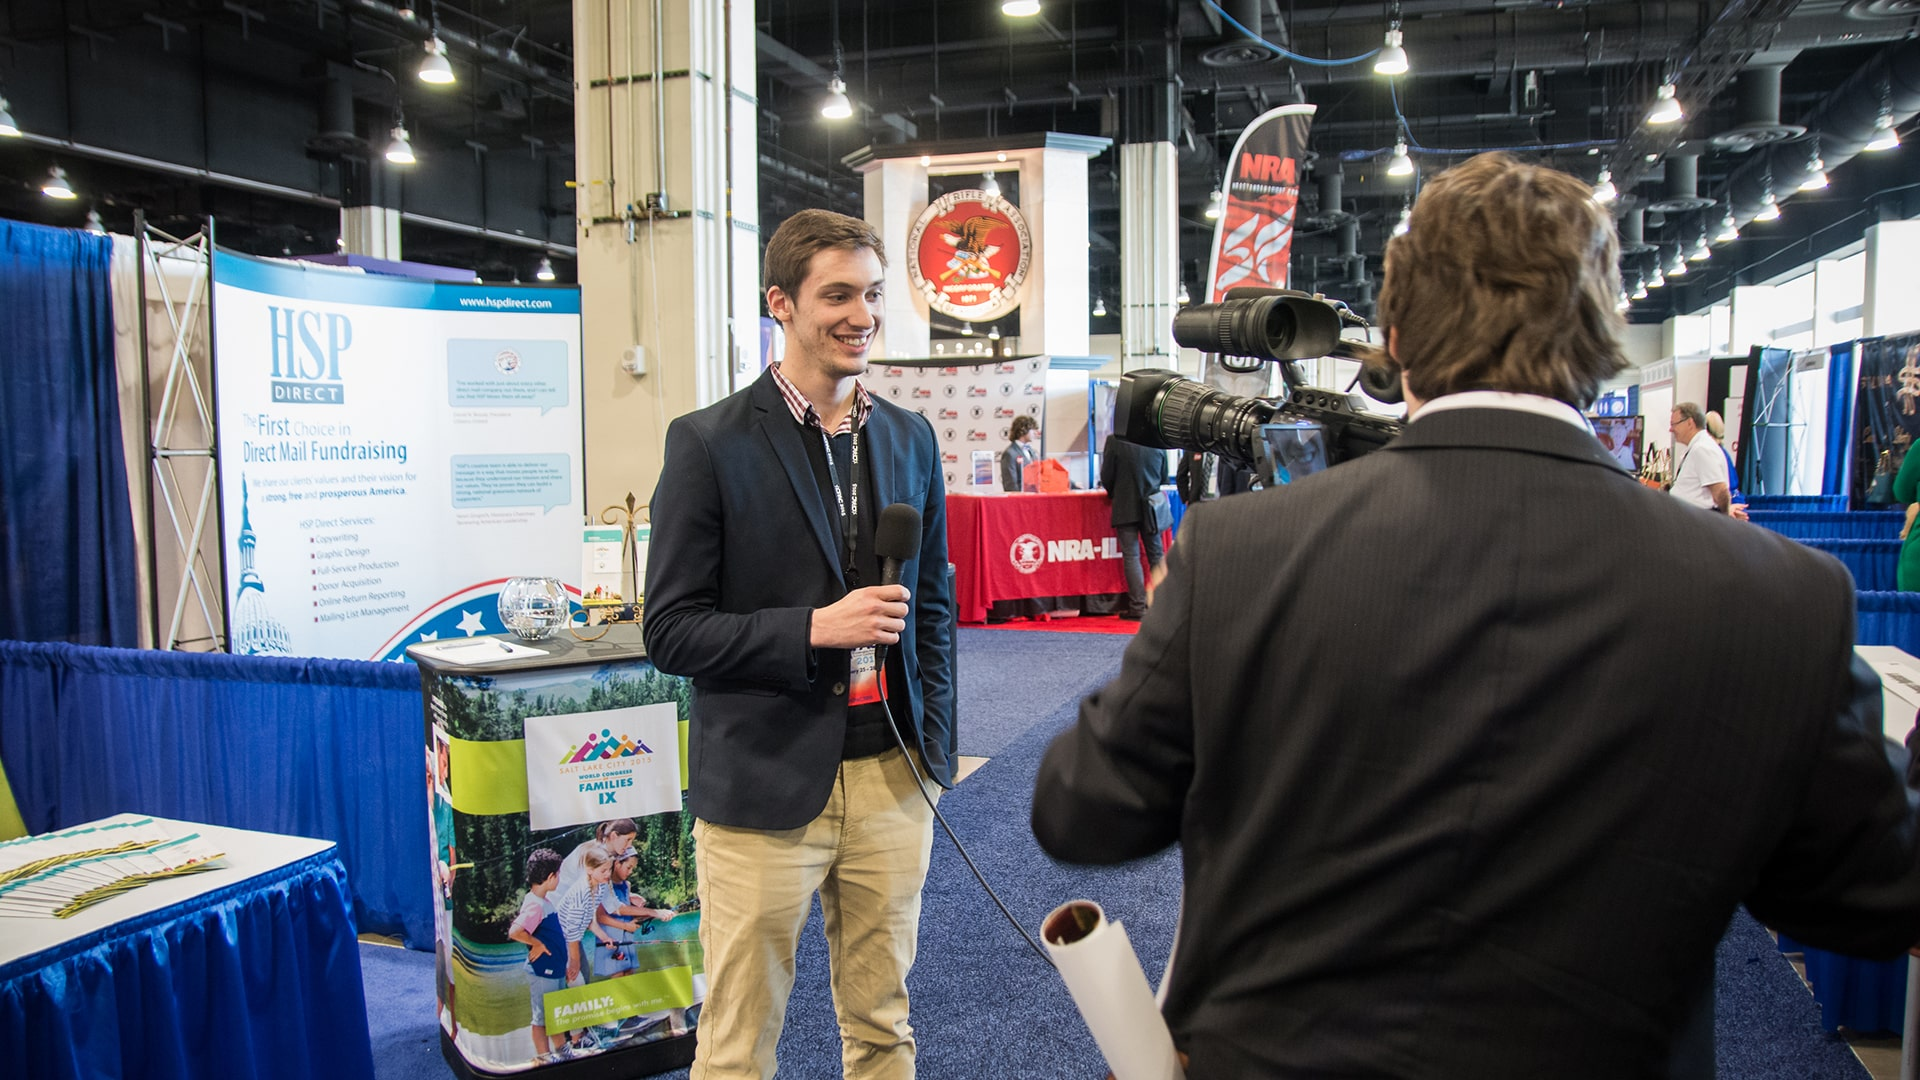 Alex Eaton at CPAC